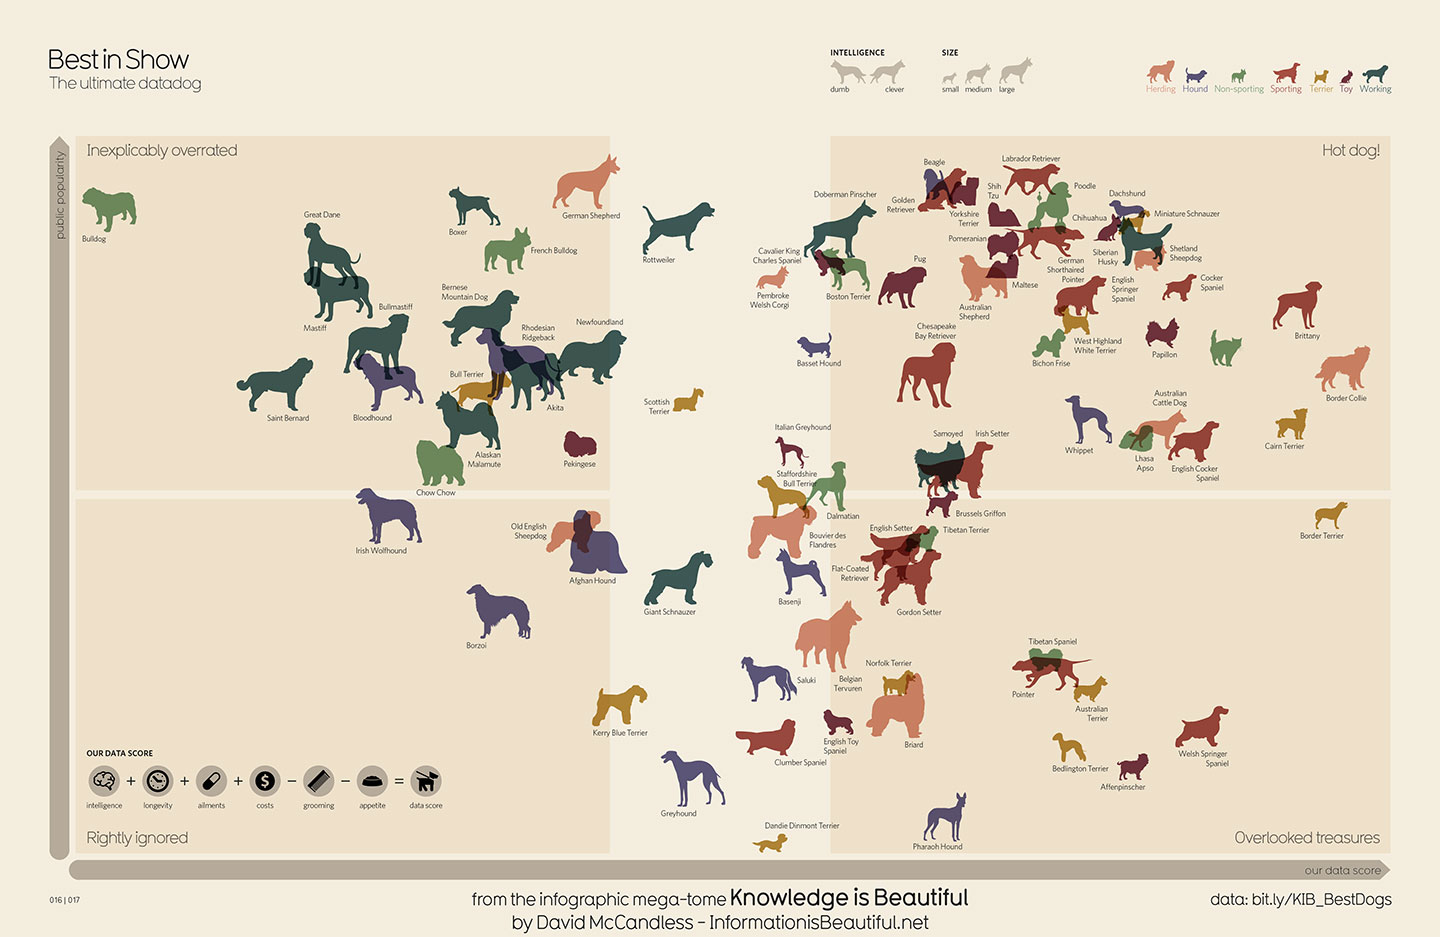 Australia Map Looks Like A Dog.A Definitive Ranking Of The Most Overrated And Underrated Dog Breeds